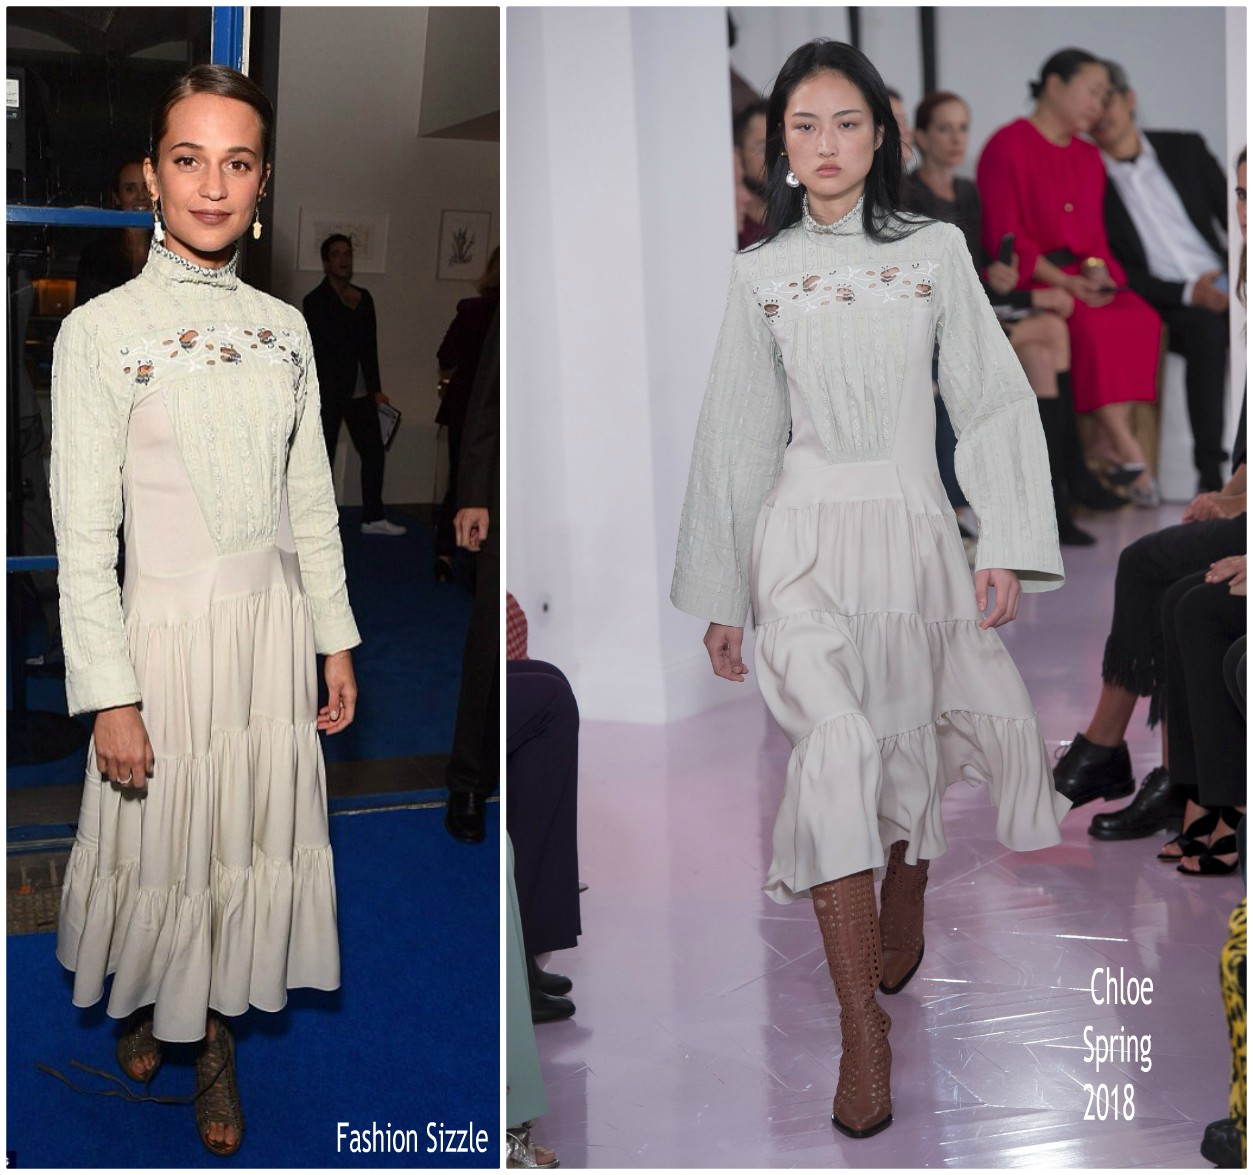 alicia-vikander-in-chloe-british-vogues-december-issue-dinner-party